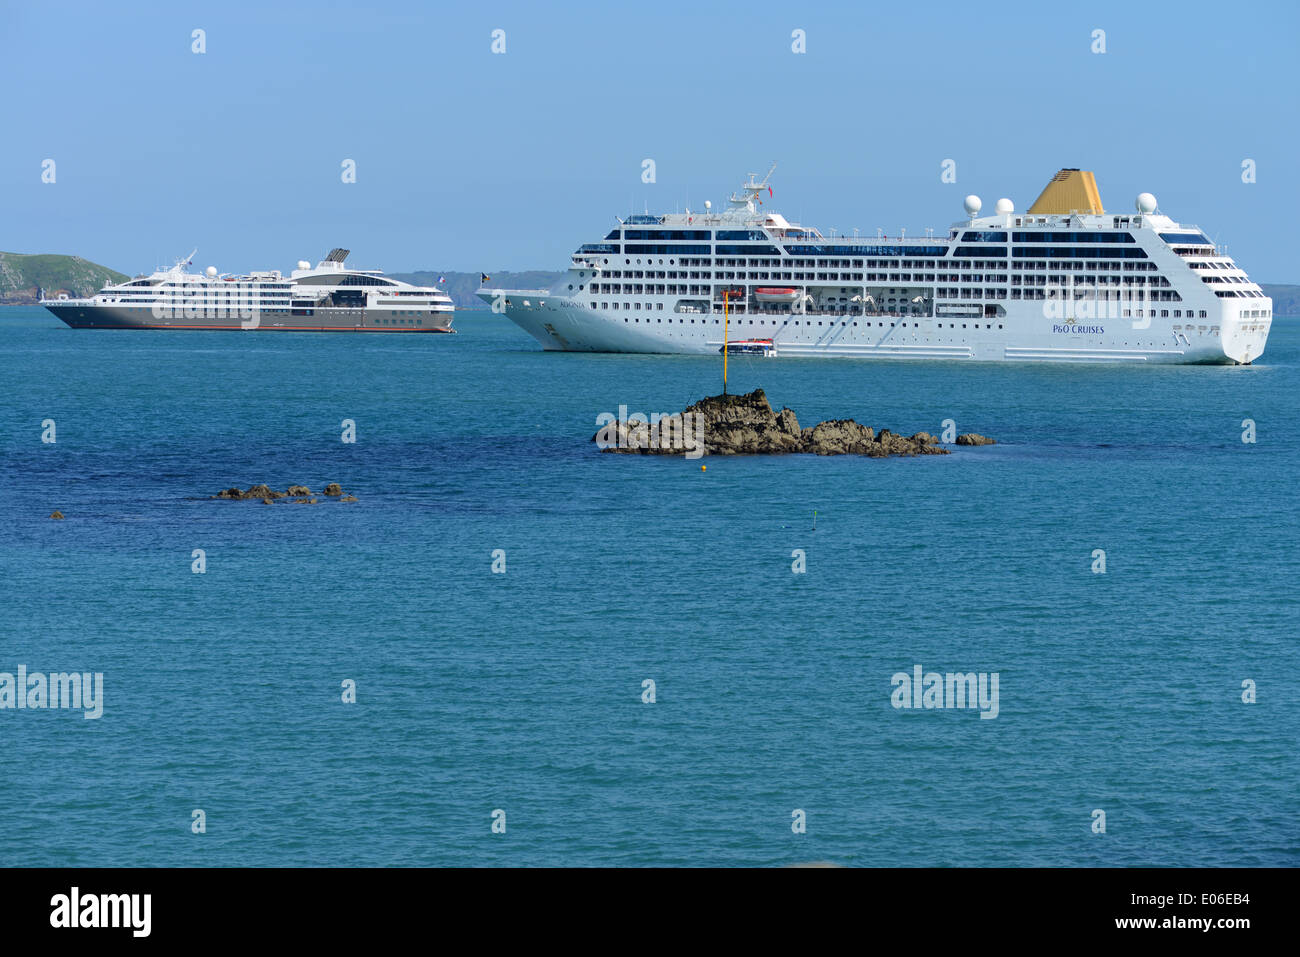 Cruise ships moored off the port of St. Peter Port, Guernsey, Channel Islands - Stock Image